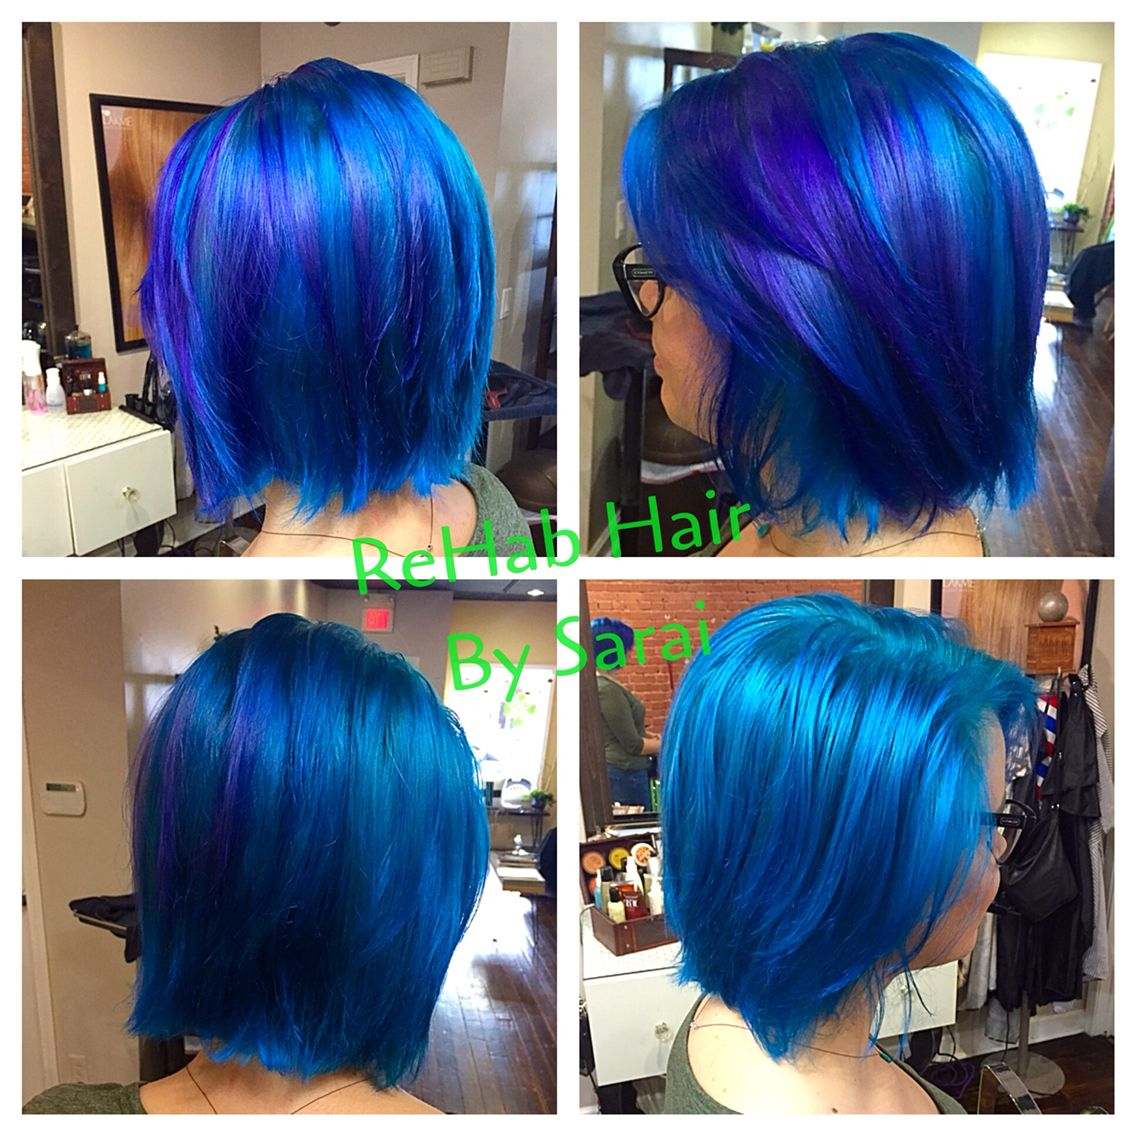 Fun Vibrant Color Thanks To Pravana Locked In And Vivids With